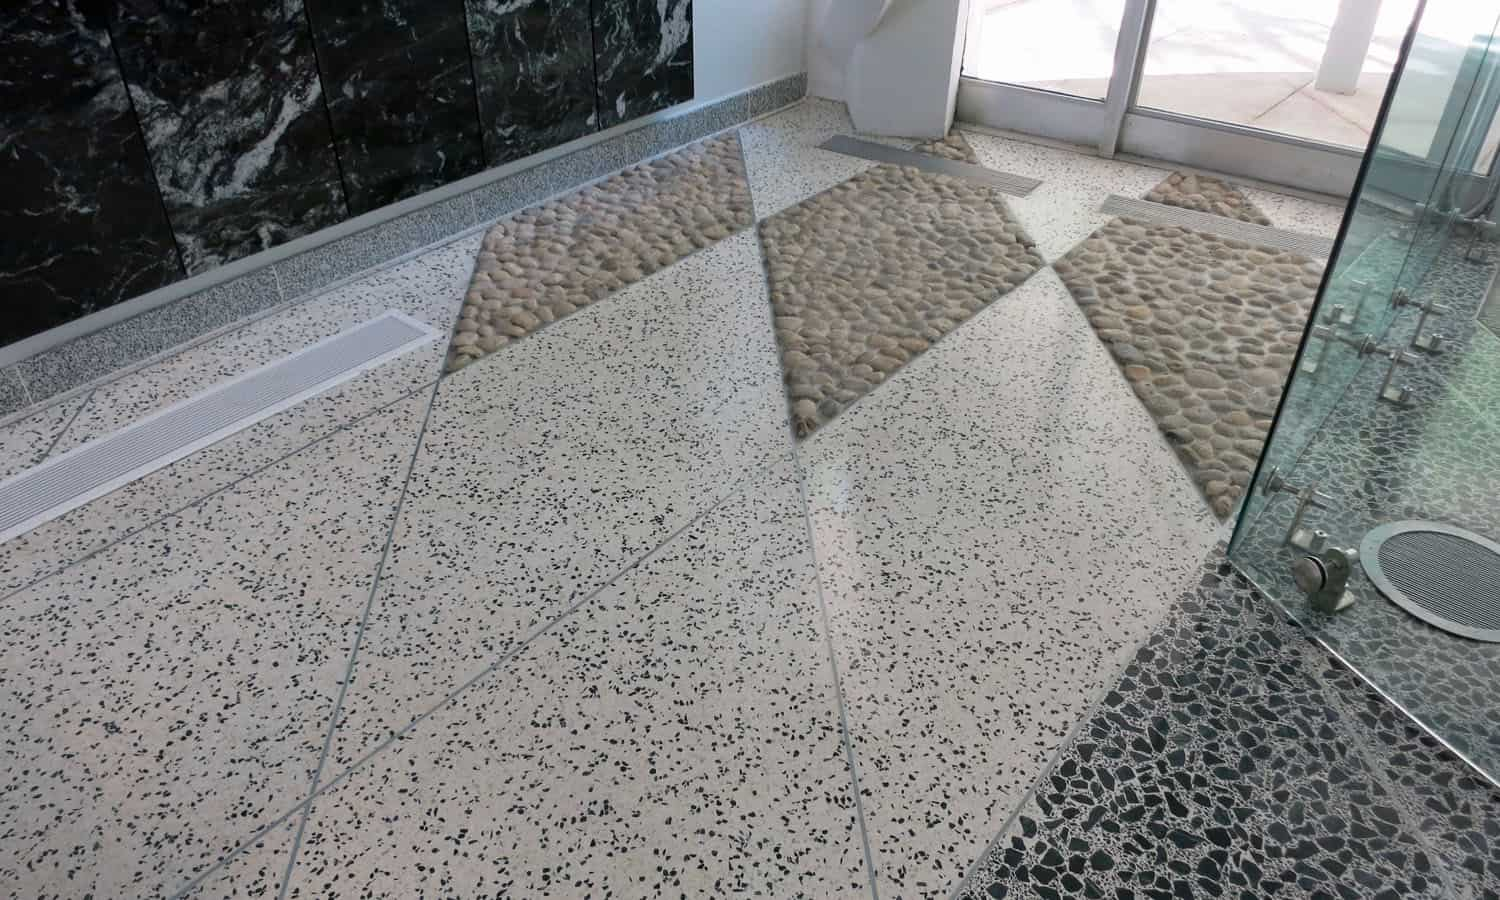 Dark and light terrazzo flooring in the lobby is similar to the dark and light exposed aggregate of the pre-cast concrete facades